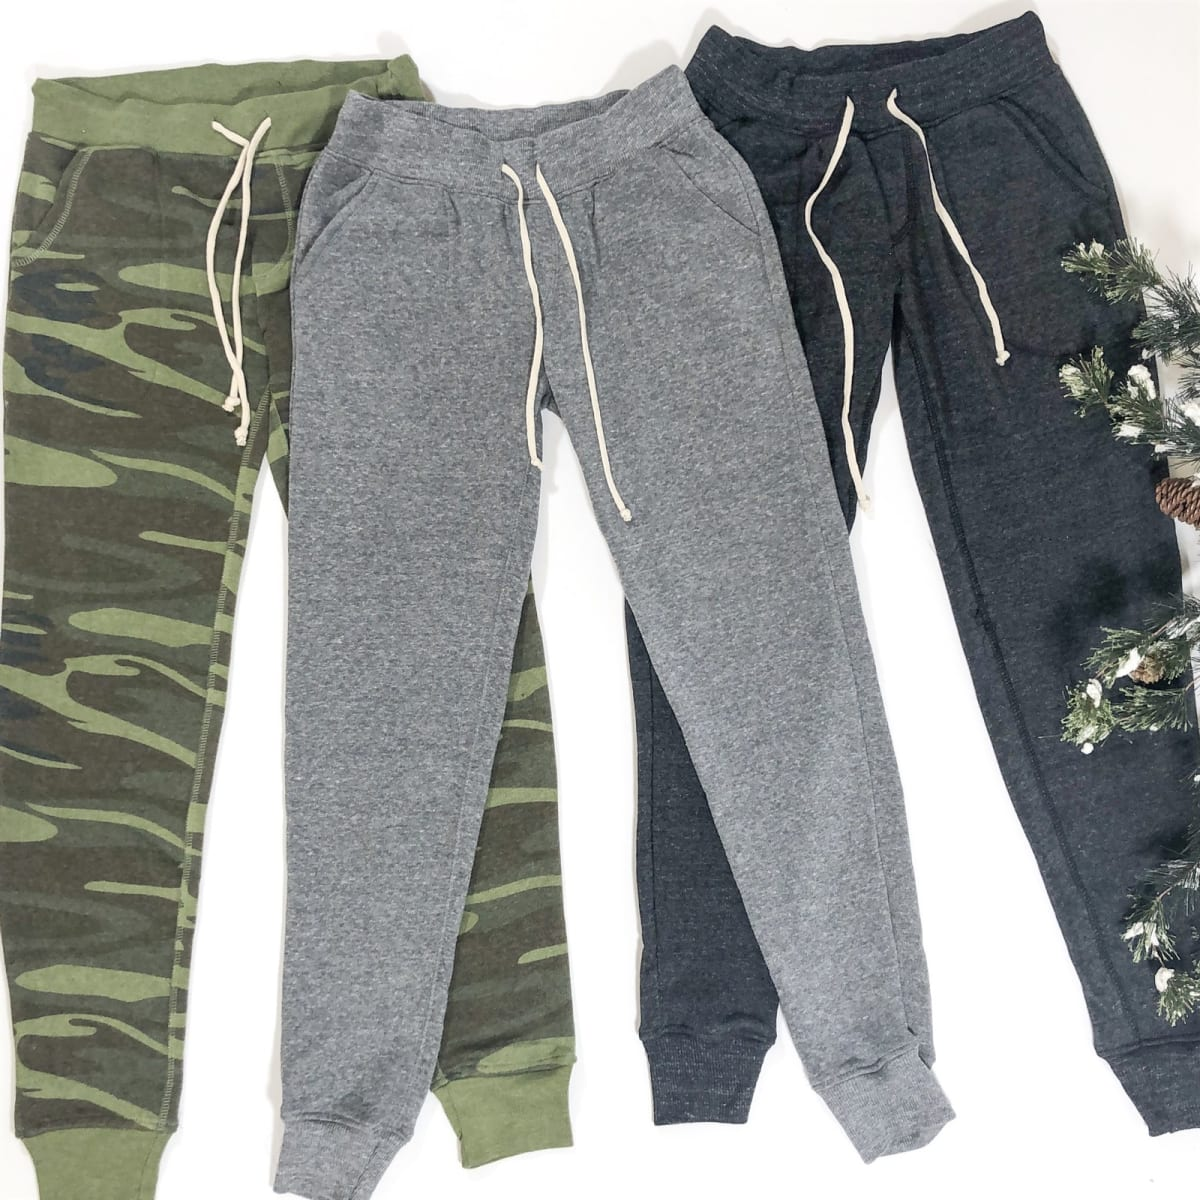 1 Women's Fleece Jogger Sweatpants